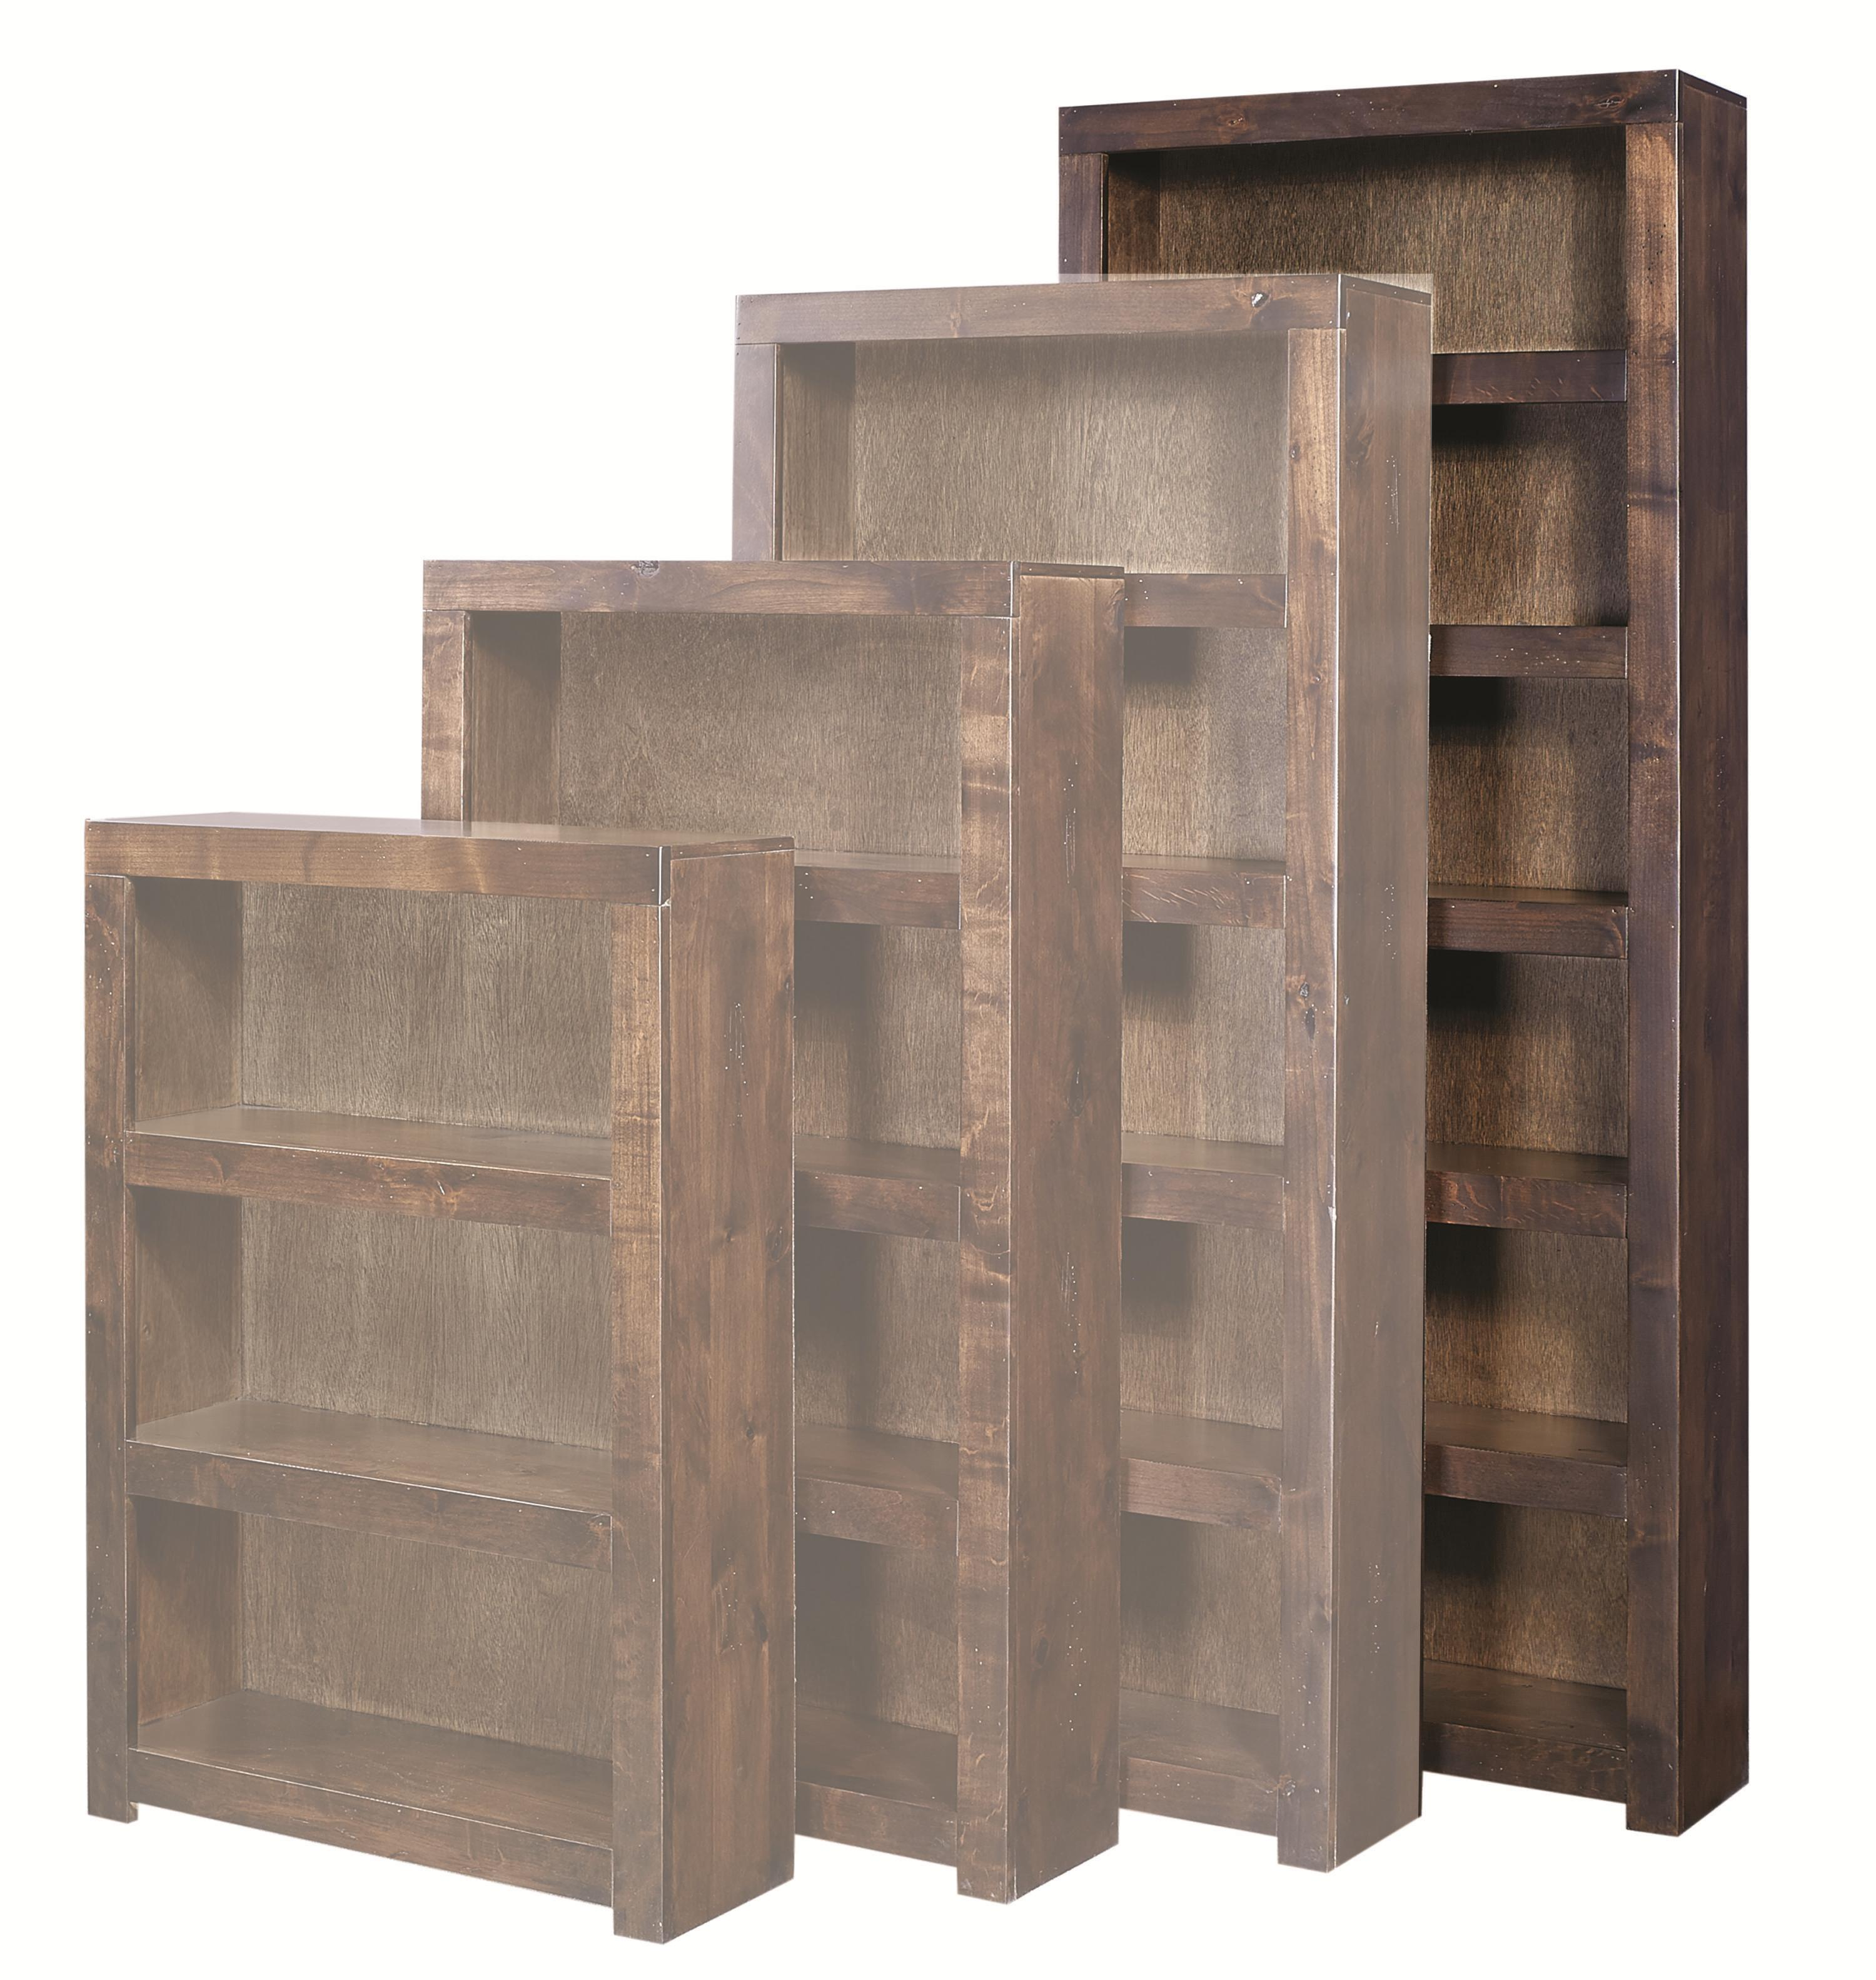 Contemporary Alder 84 Inch Bookcase by Aspenhome at Baer's Furniture